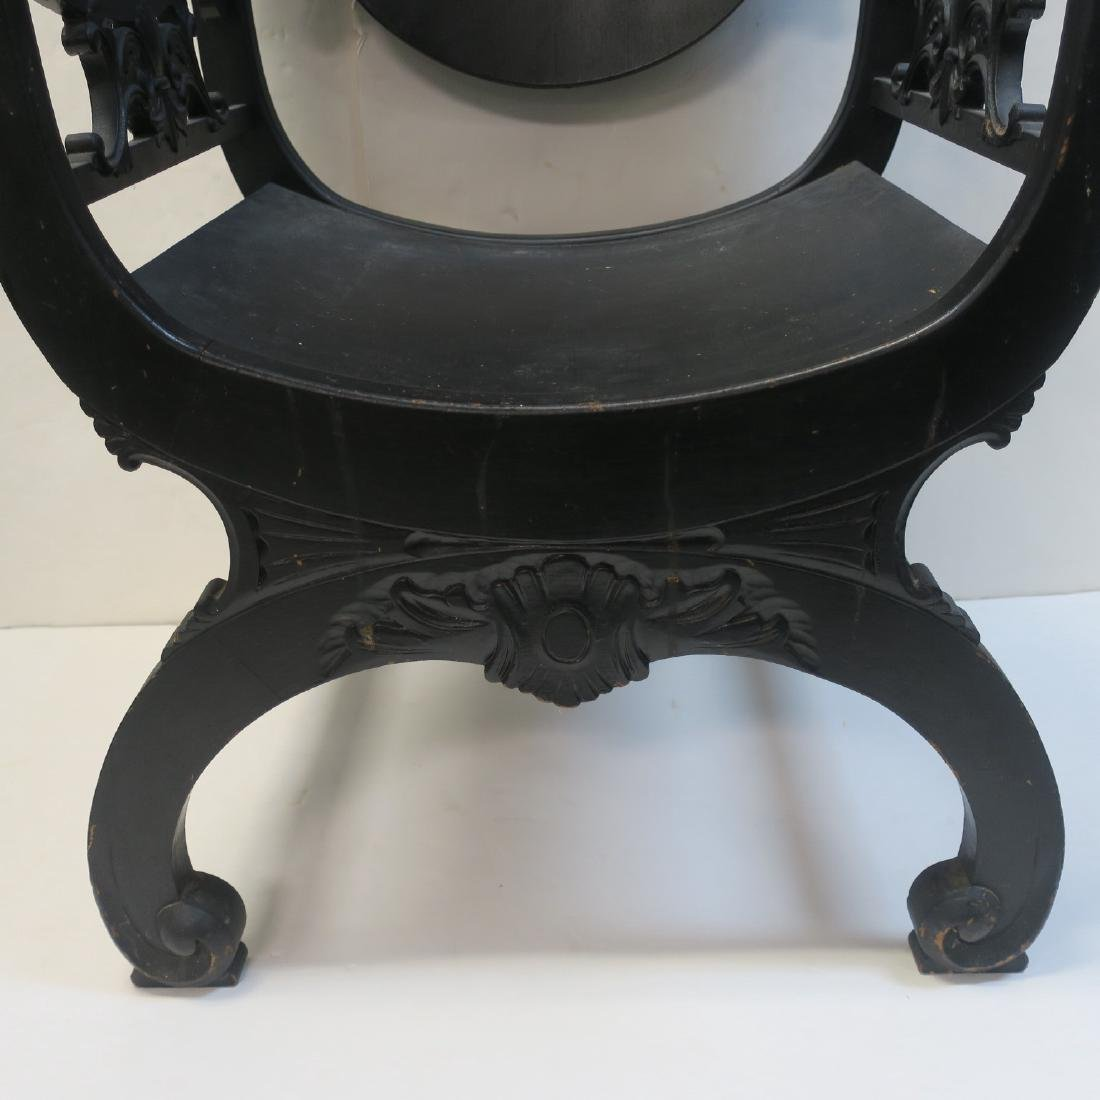 Classical Revival Carved Wooden Throne Chair: - 7